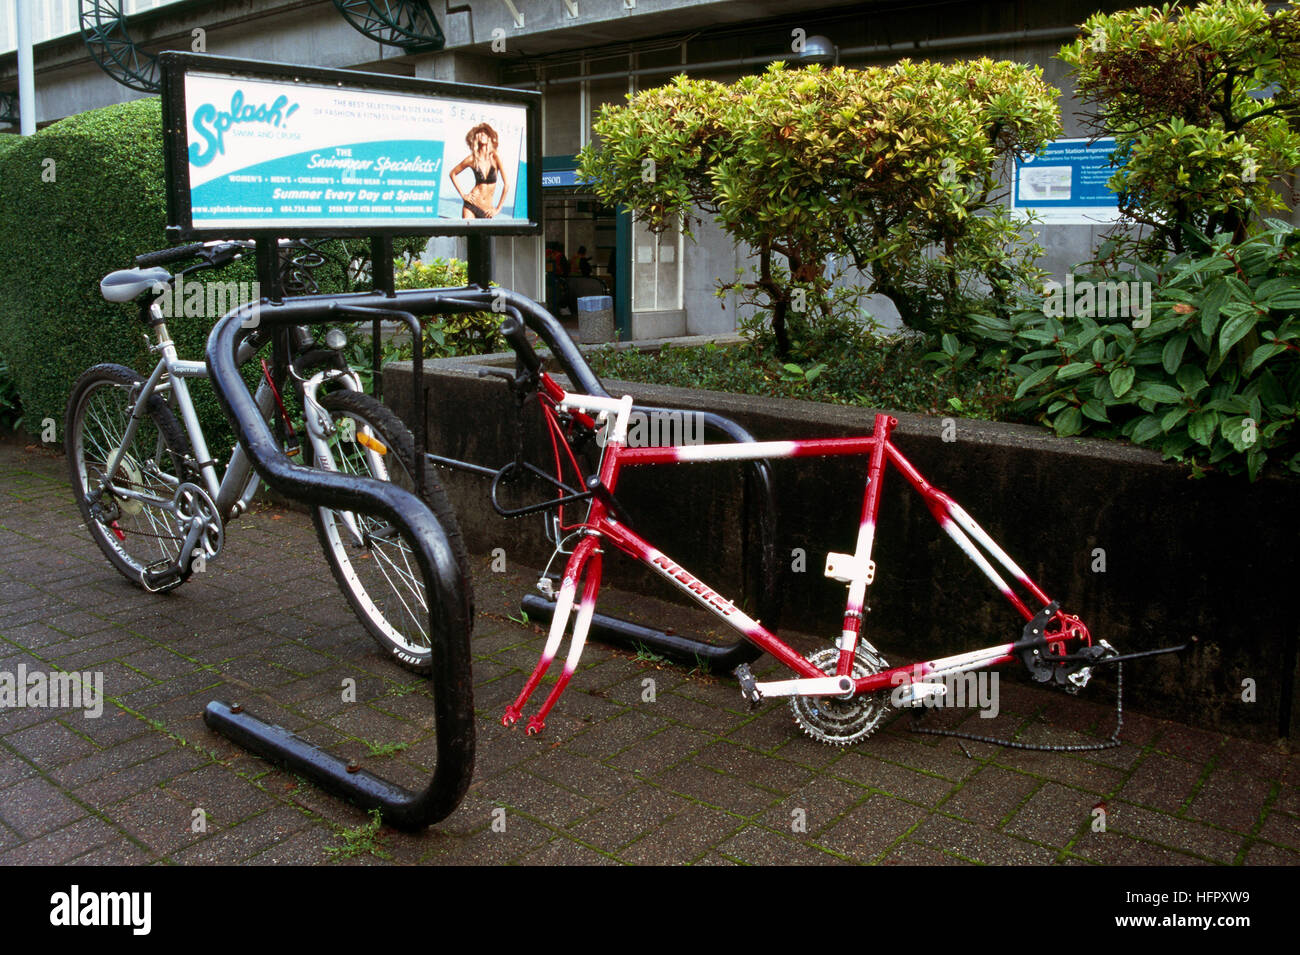 Vandalism - Vandalized Bicycle locked to Bike Stand, Frame remains after Wheels and Seat stolen - Stock Image